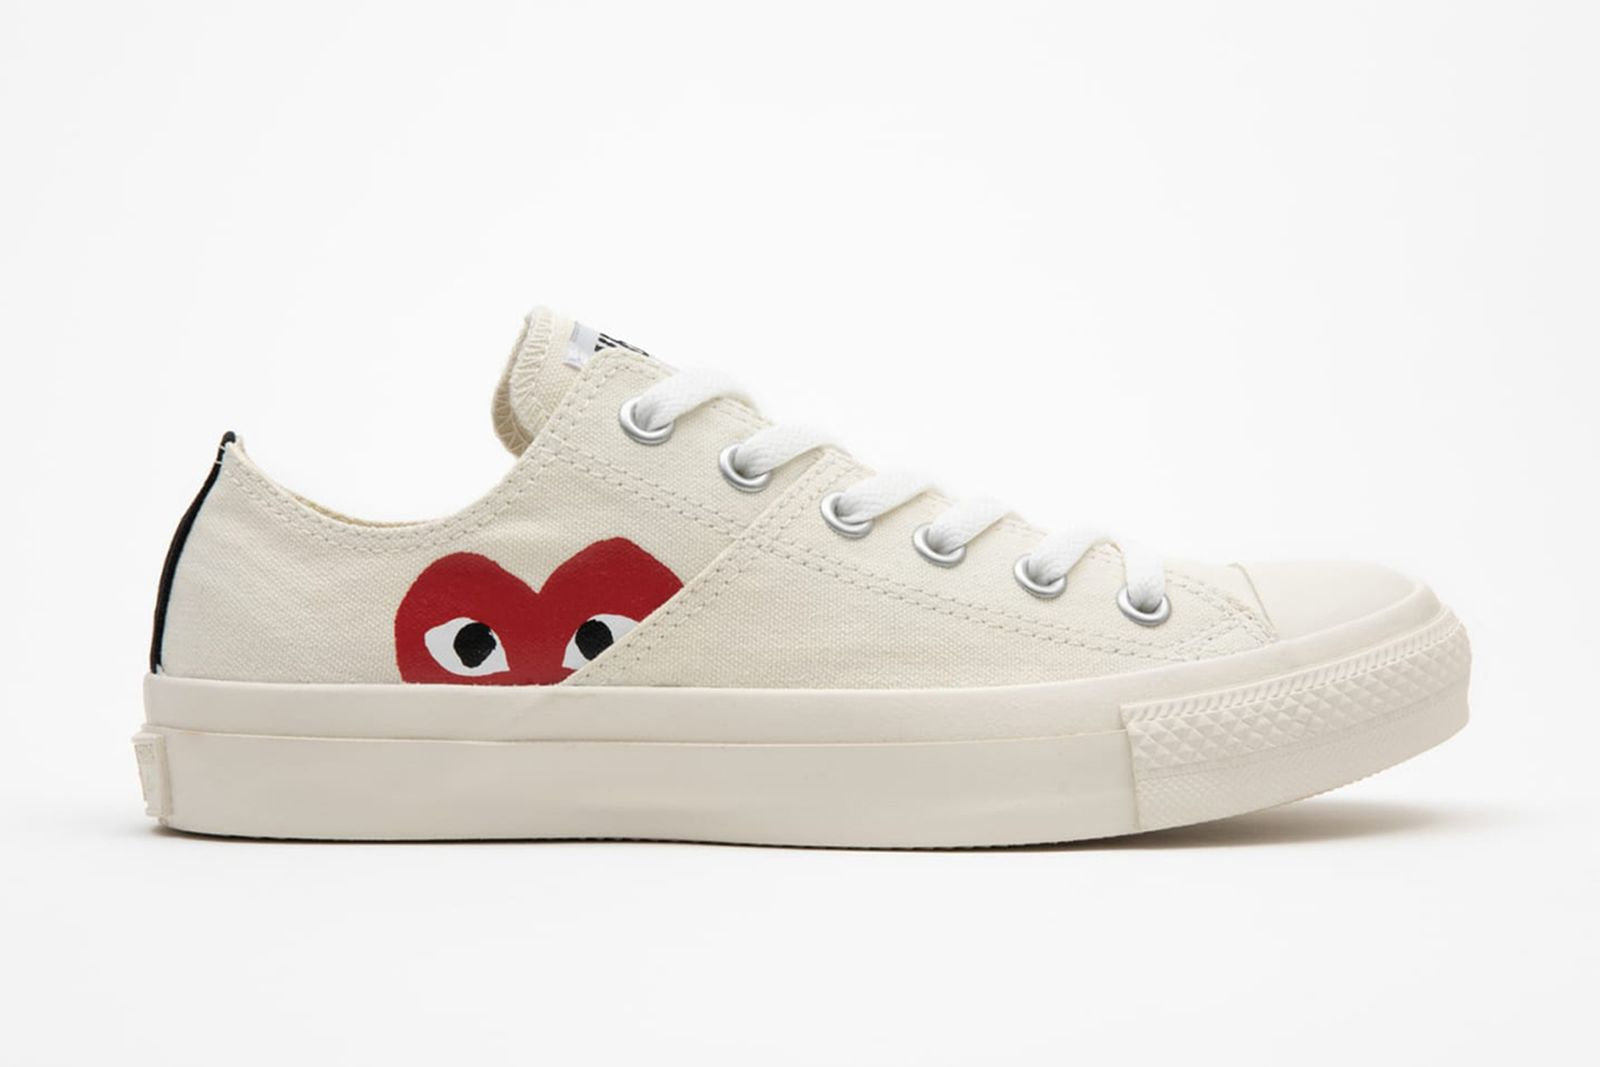 cdg play converse chuck taylor all star 70s comme des garcons heart fw21 fall winter 2021 hiding heart logo print price info buy colorway